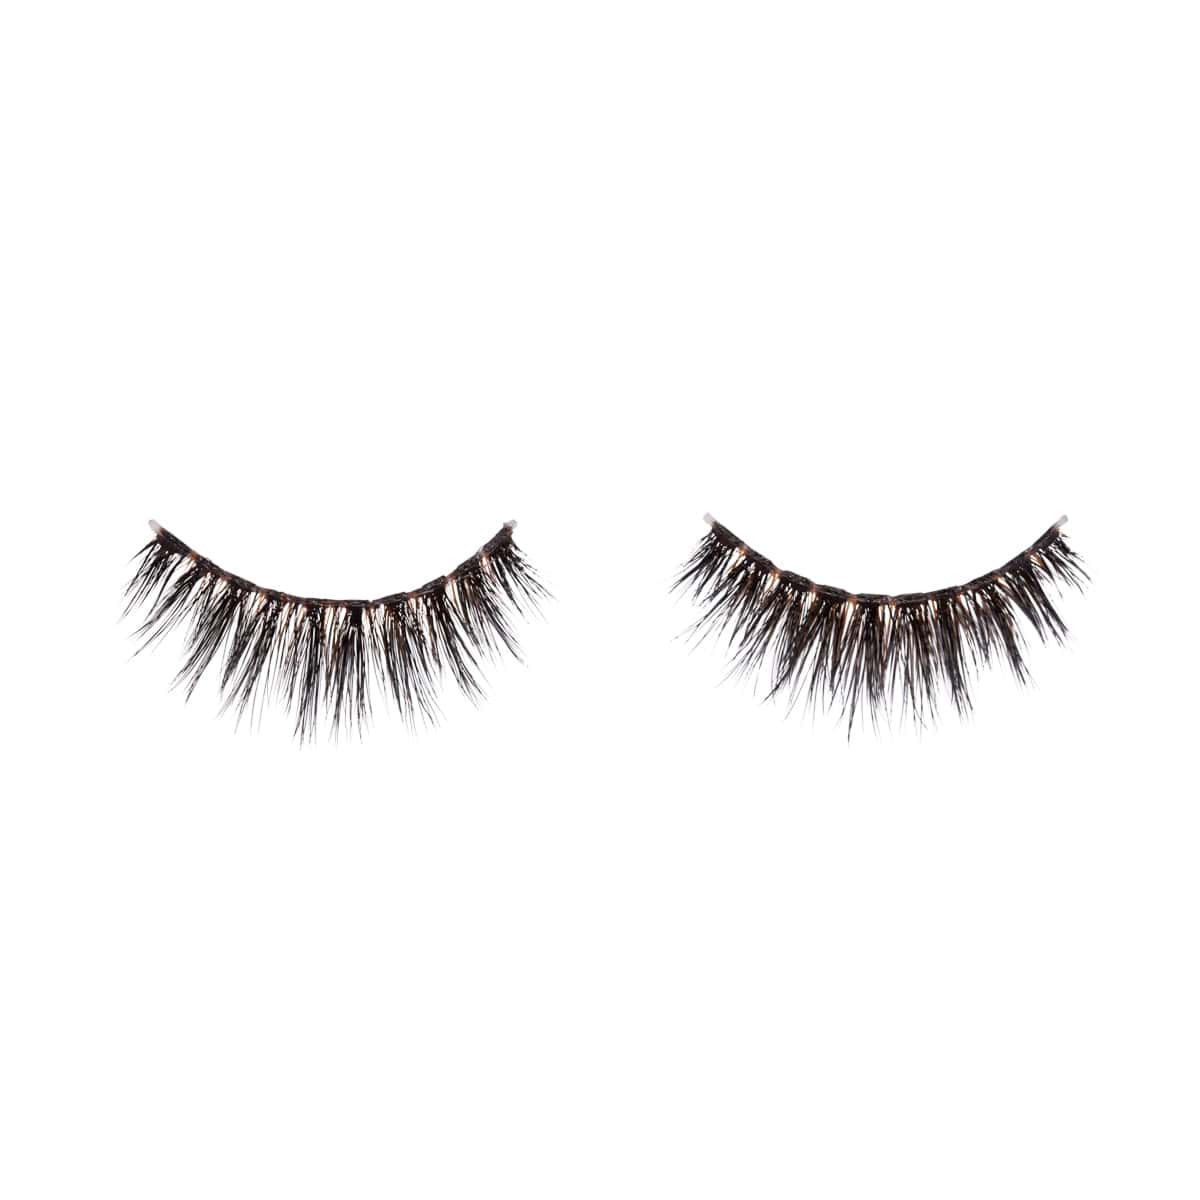 7a2125d7505 PRO Eyelashes in Diva│PÜR The Complexion Authority™